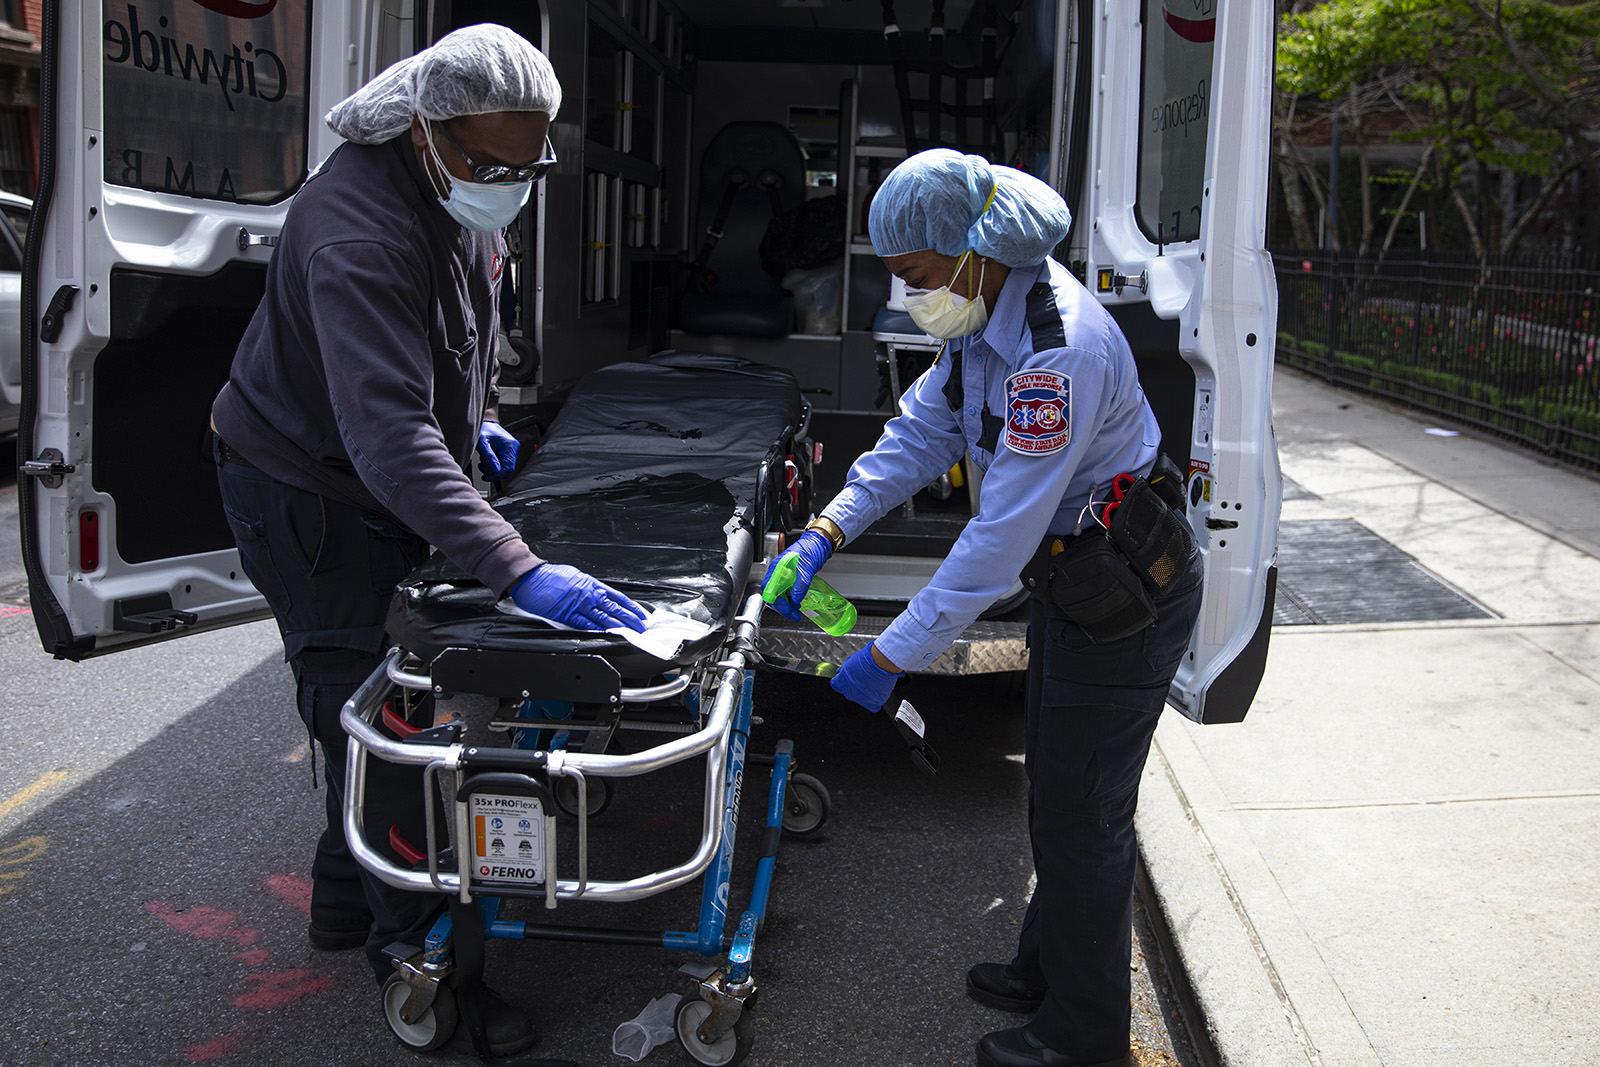 Two emergency medical staff of a private ambulance company sanitize a hospital gurney after they dropped off a patient at the Cobble Hill Health Center April 20, 2020 in the Brooklyn borough of New York City.